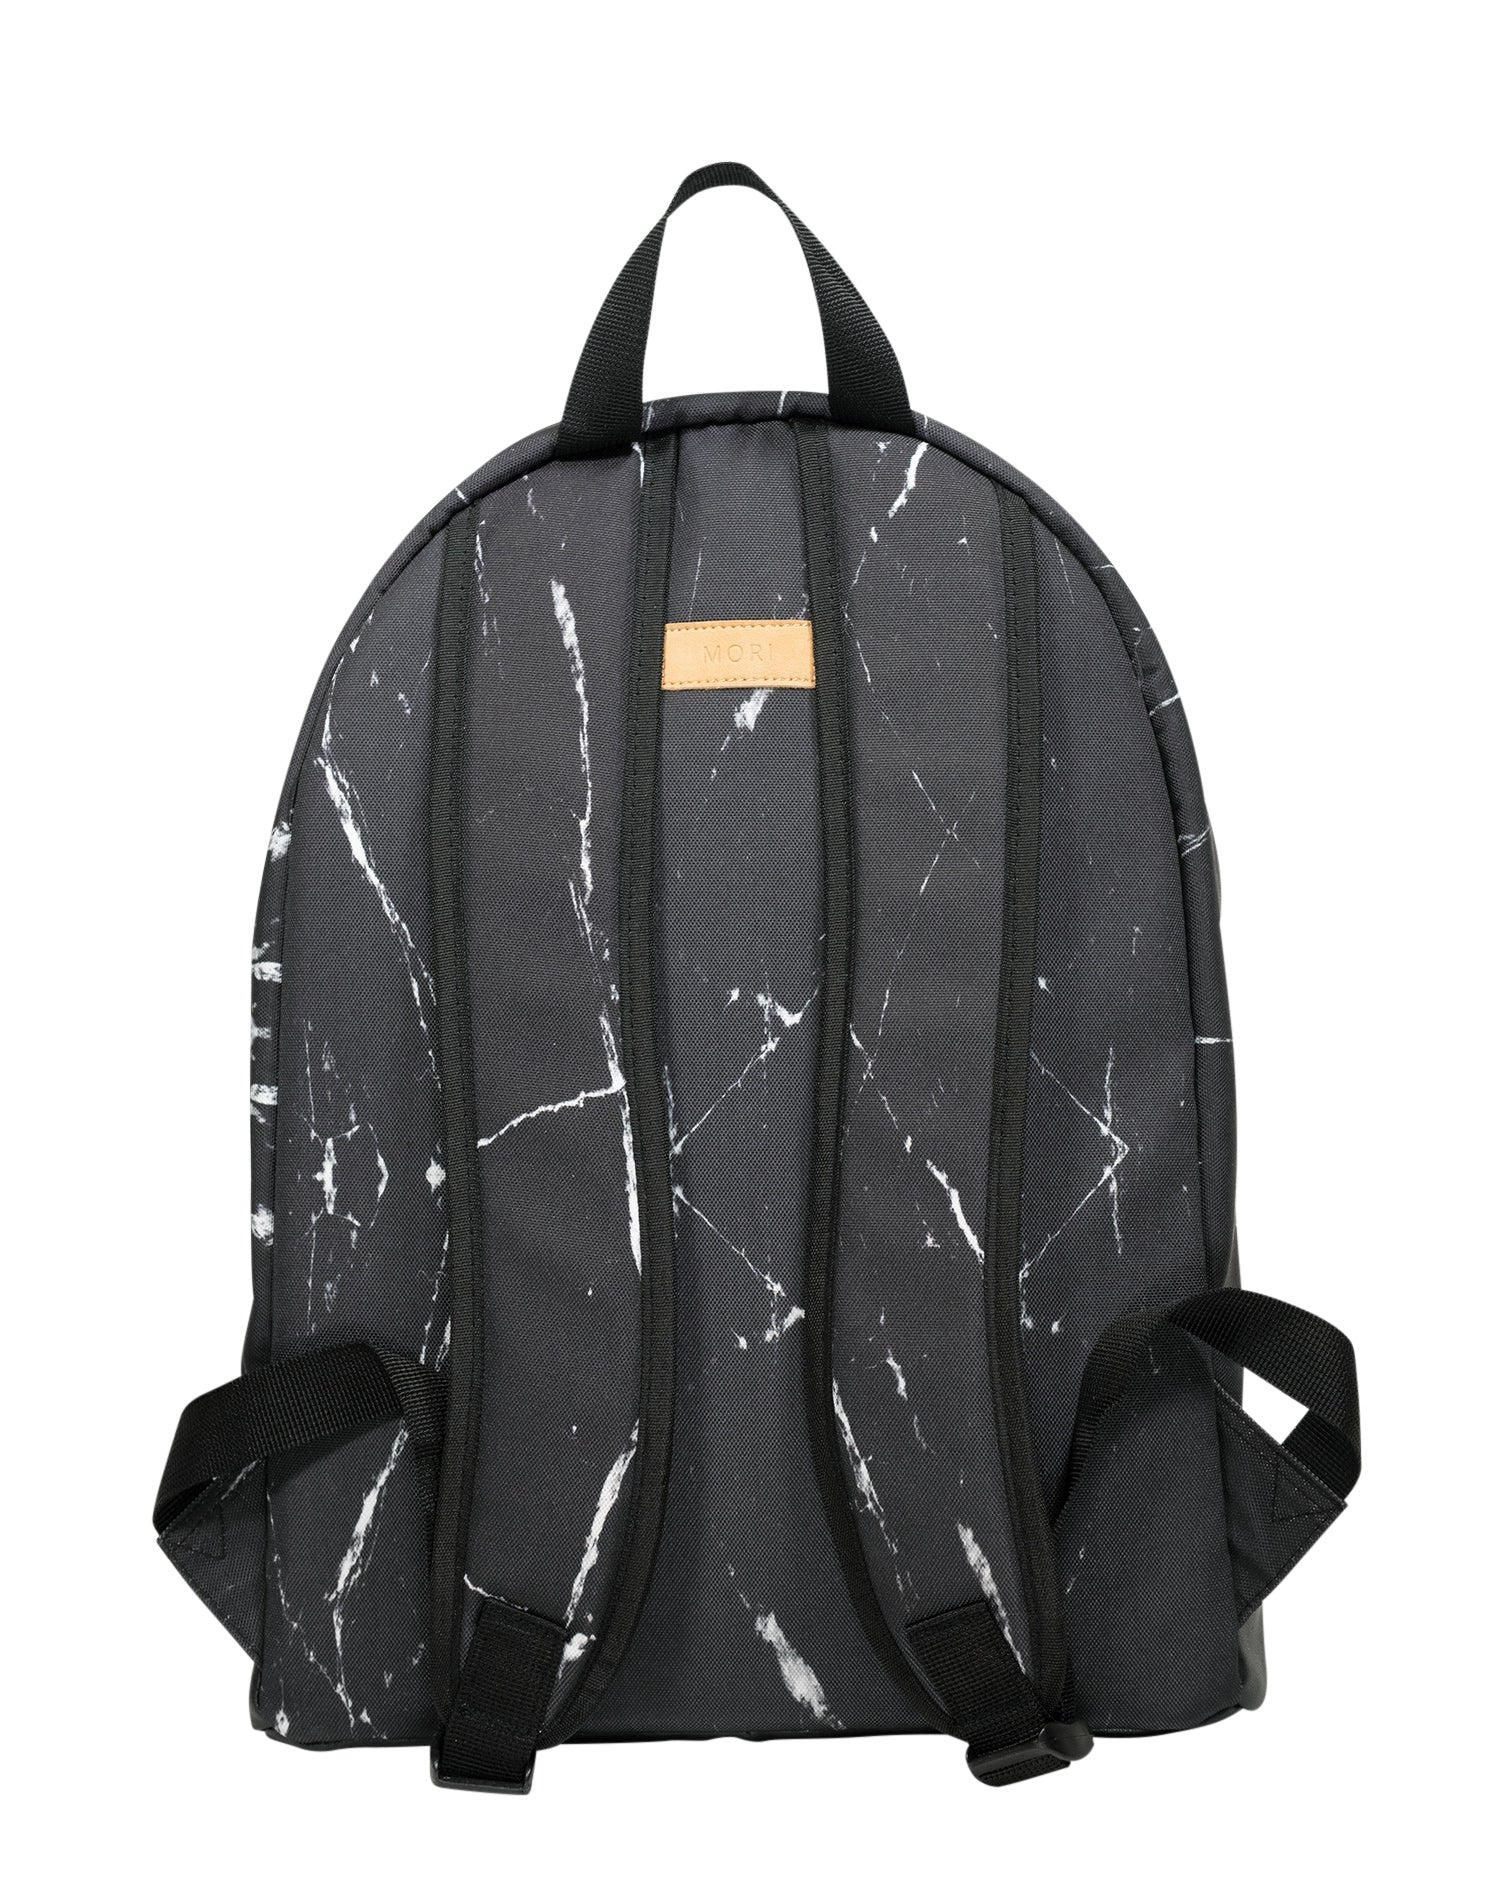 Onyx Marble Cotton Canvas Backpack.條紋大理石棉帆布背囊